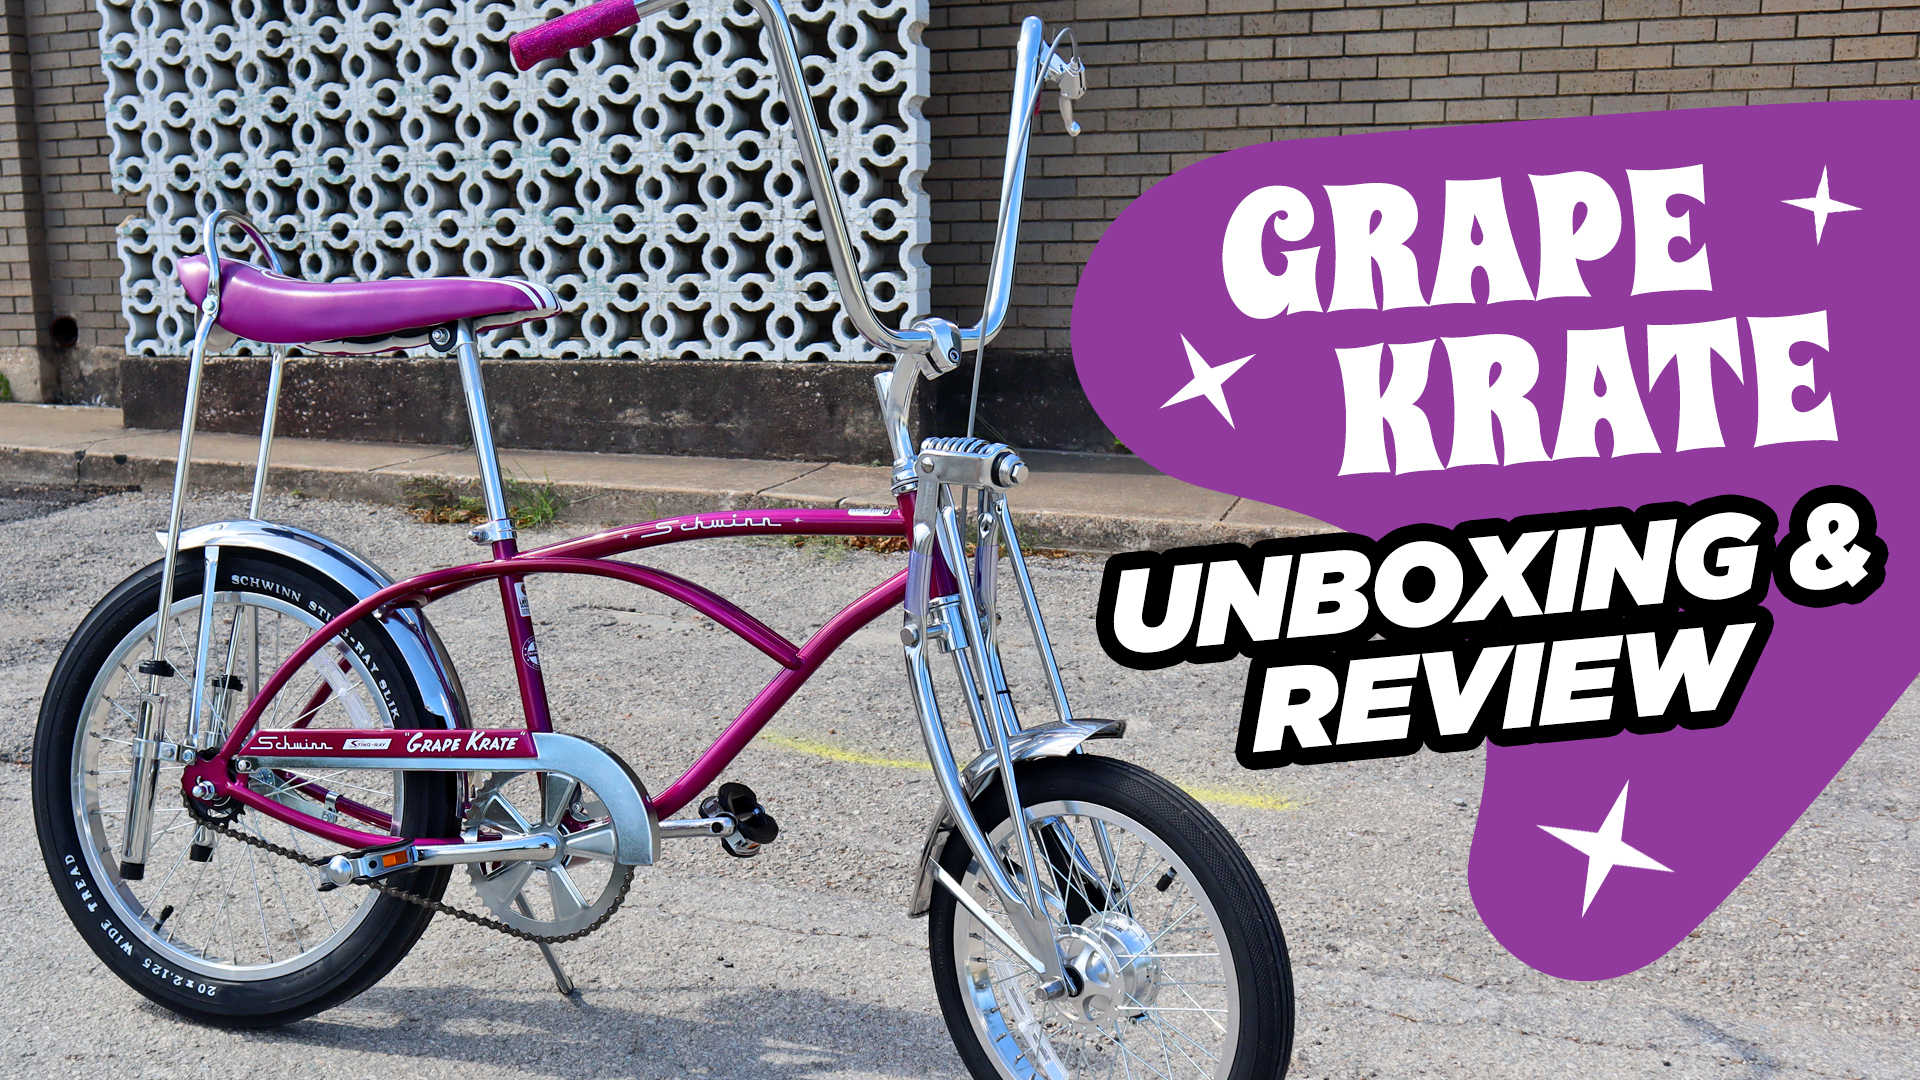 We Got Our Hands on a 2020 Schwinn Grape Krate! – Unboxing & Review